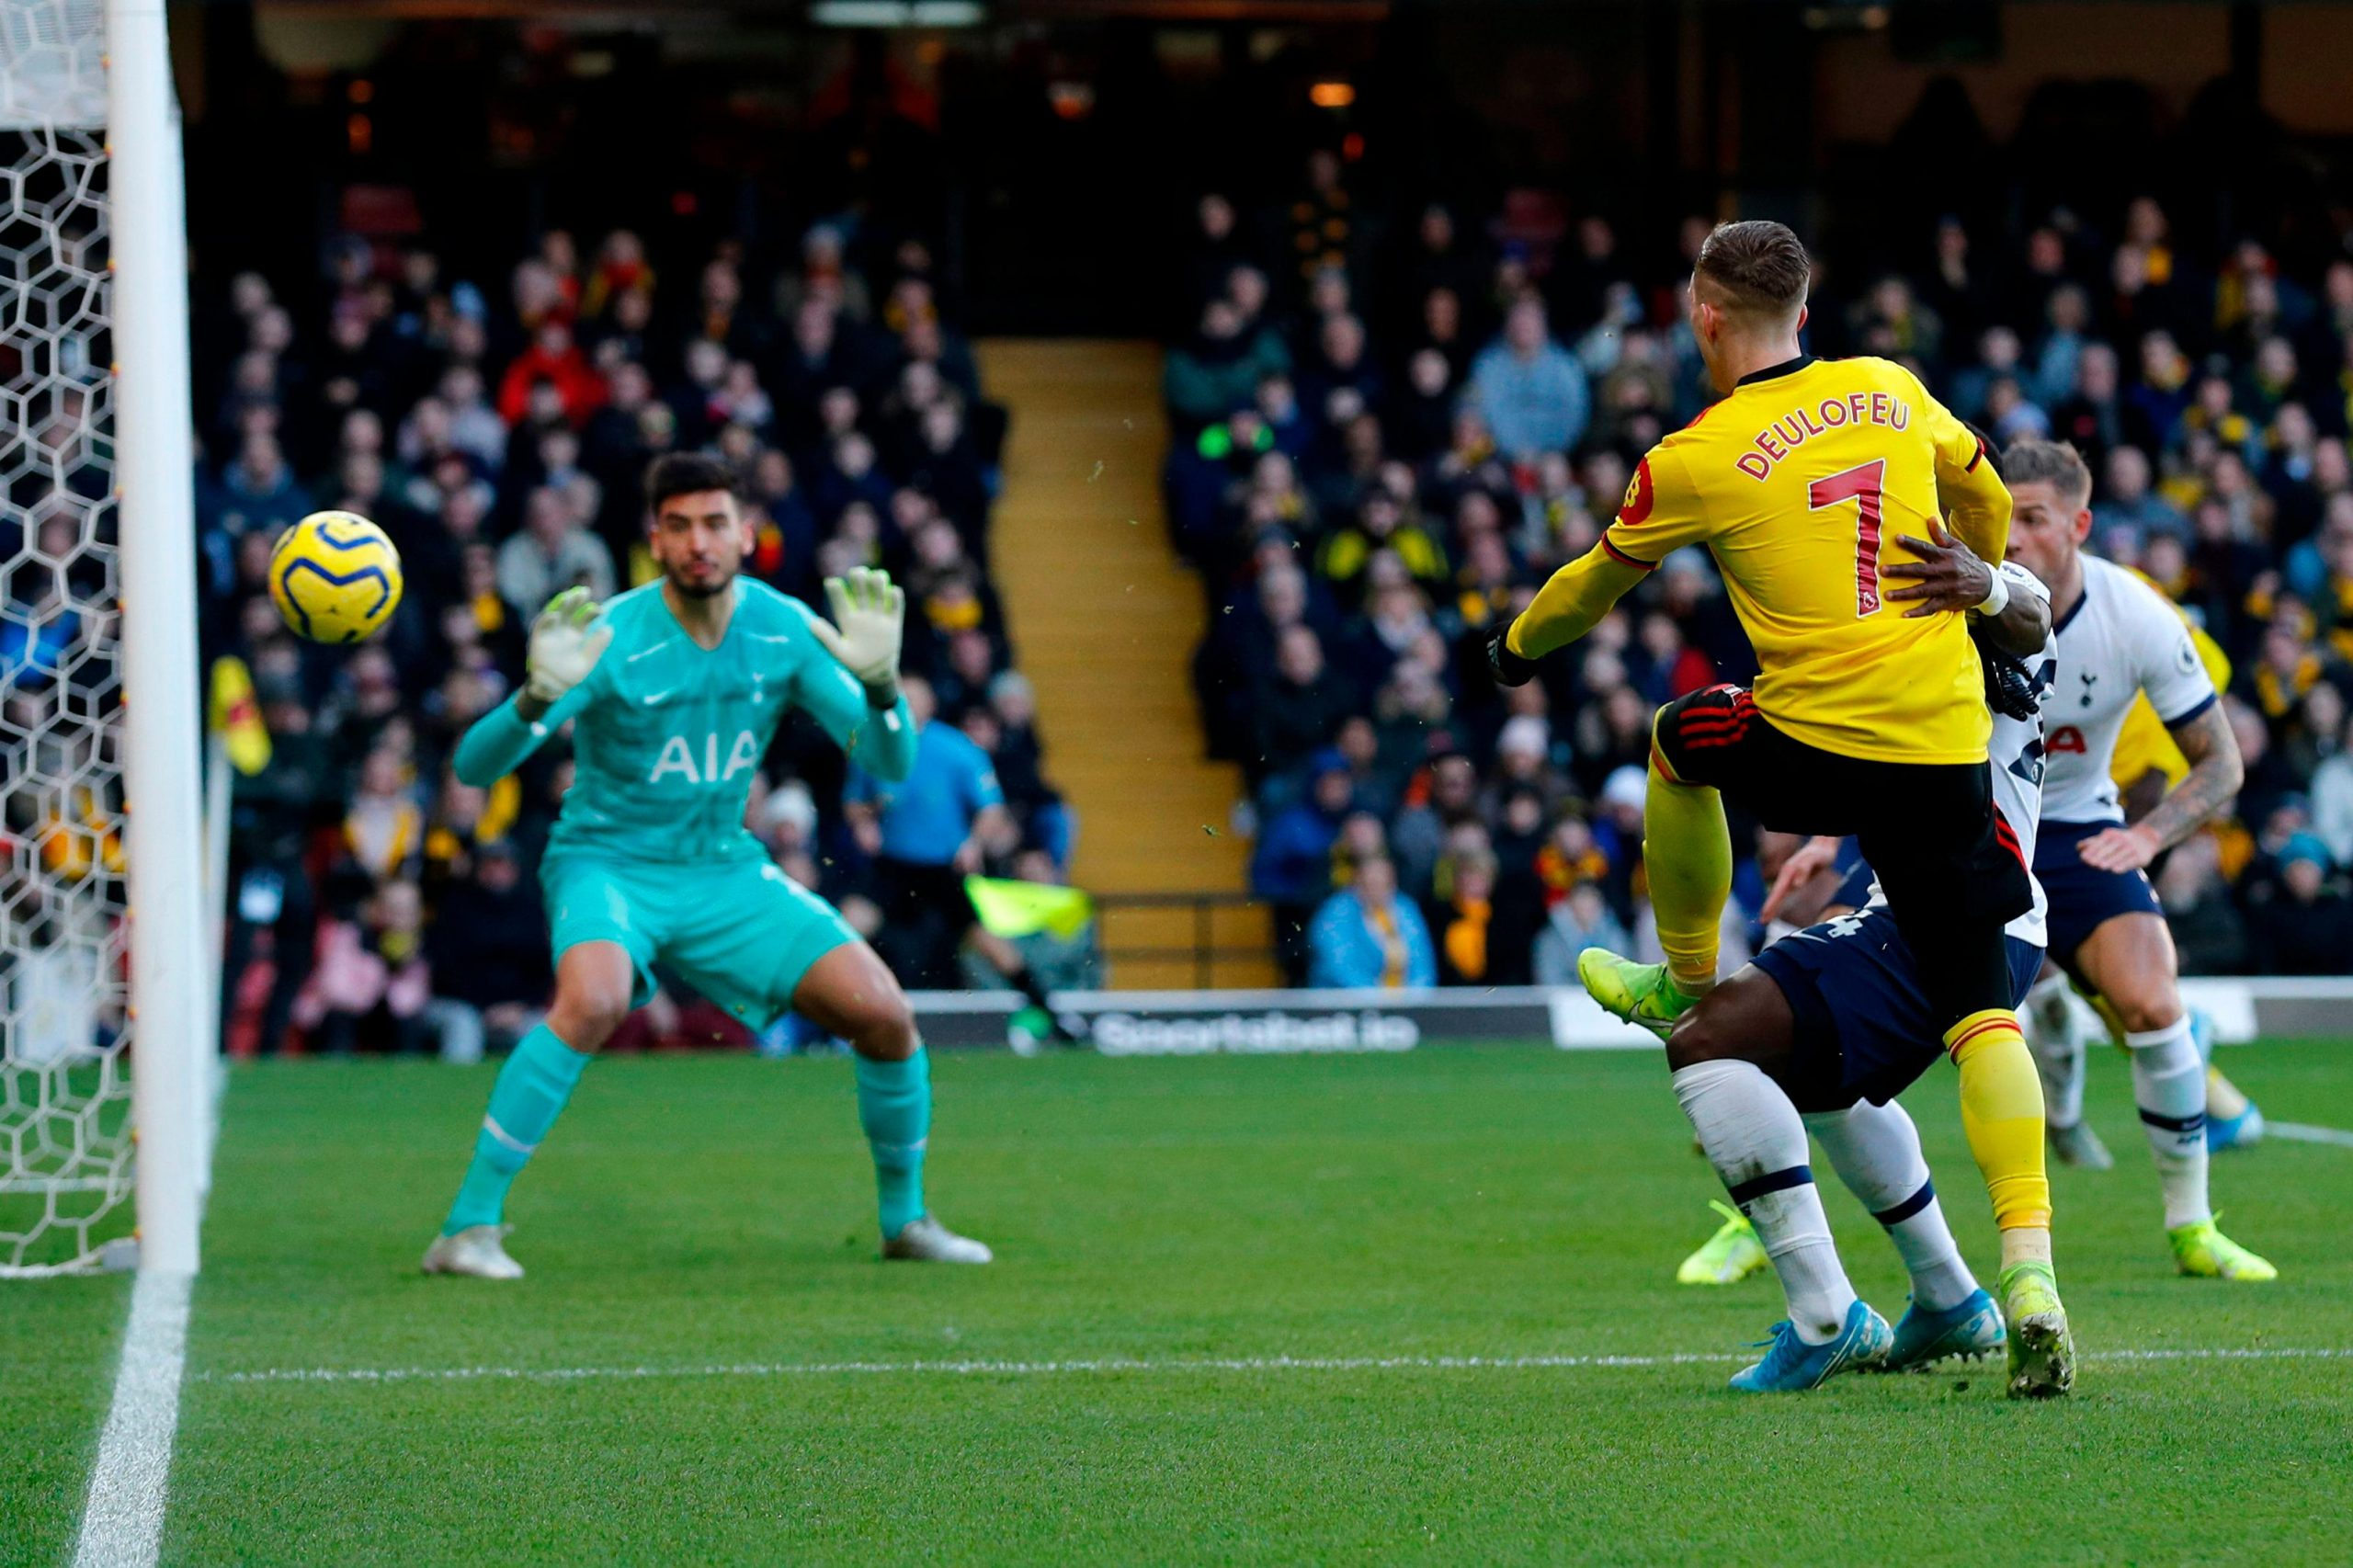 Success Drop For New Signing Pussetto As Watford Draw Spurs